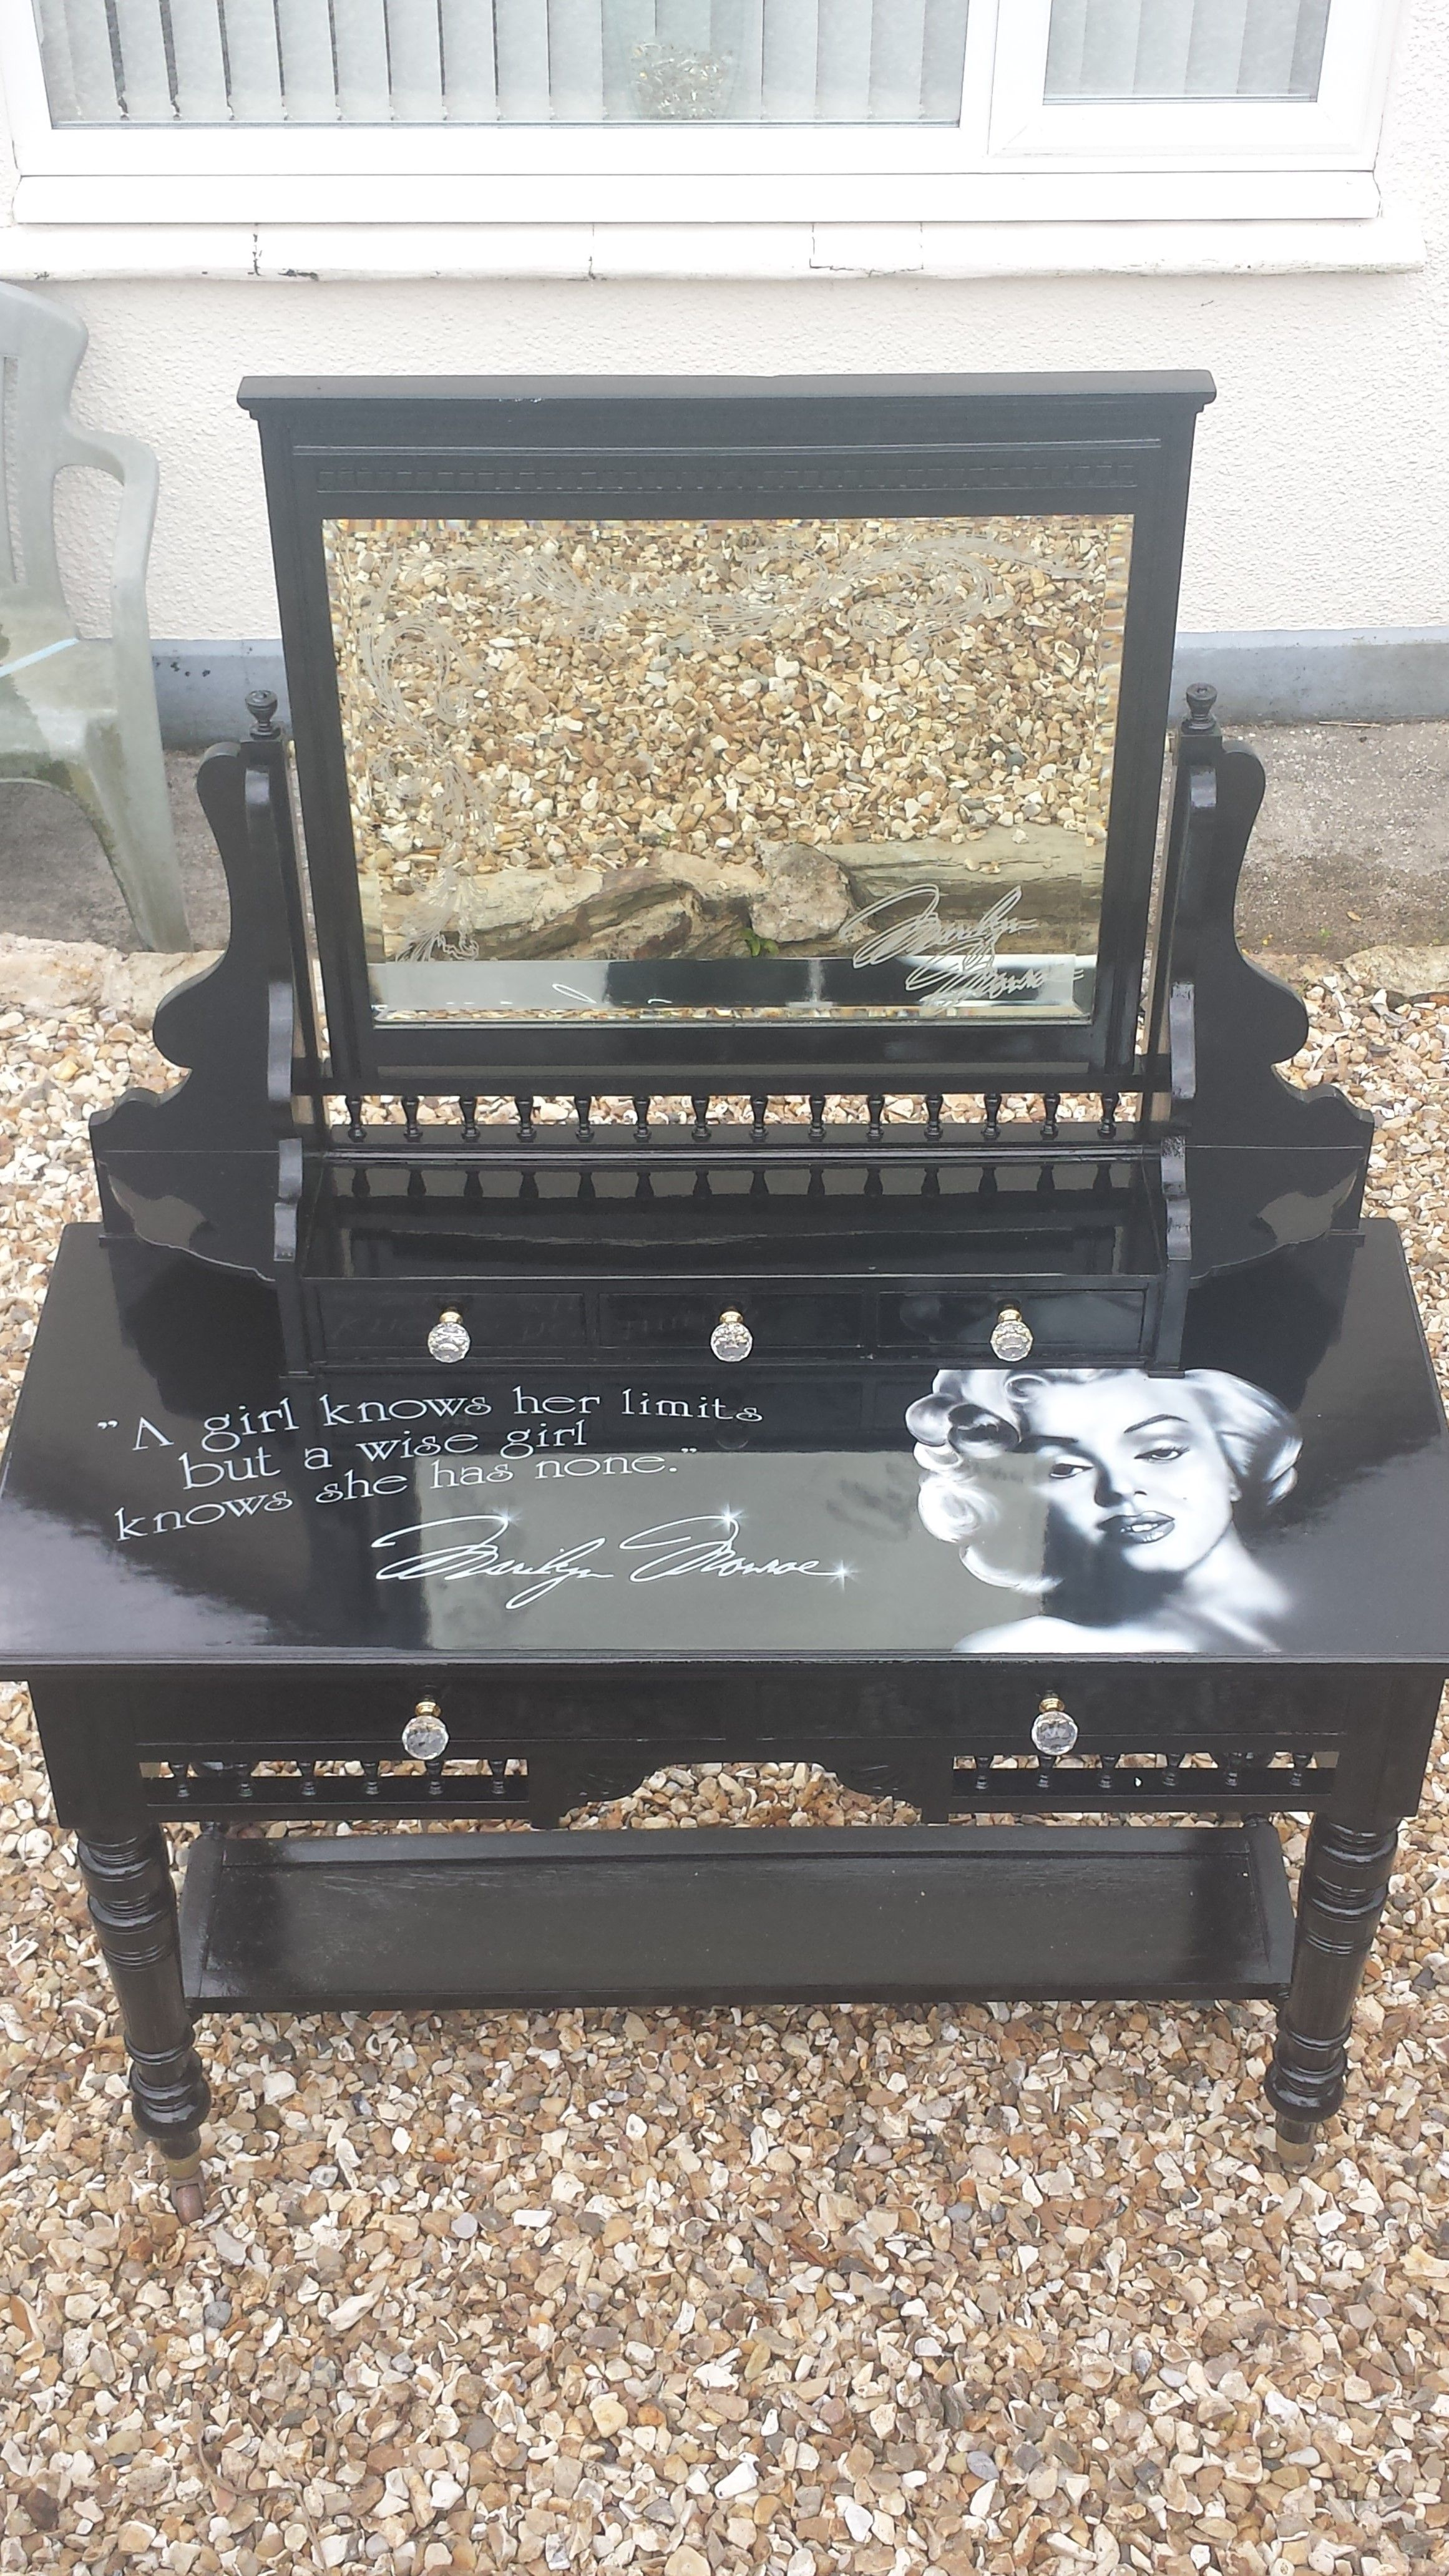 Marilyn Monroe Dressing Table Refurbished Edwardian Table Painted Black Face Airbrushed And Quote Added The Marilyn Monroe Room Marilyn Monroe Bedroom Decor